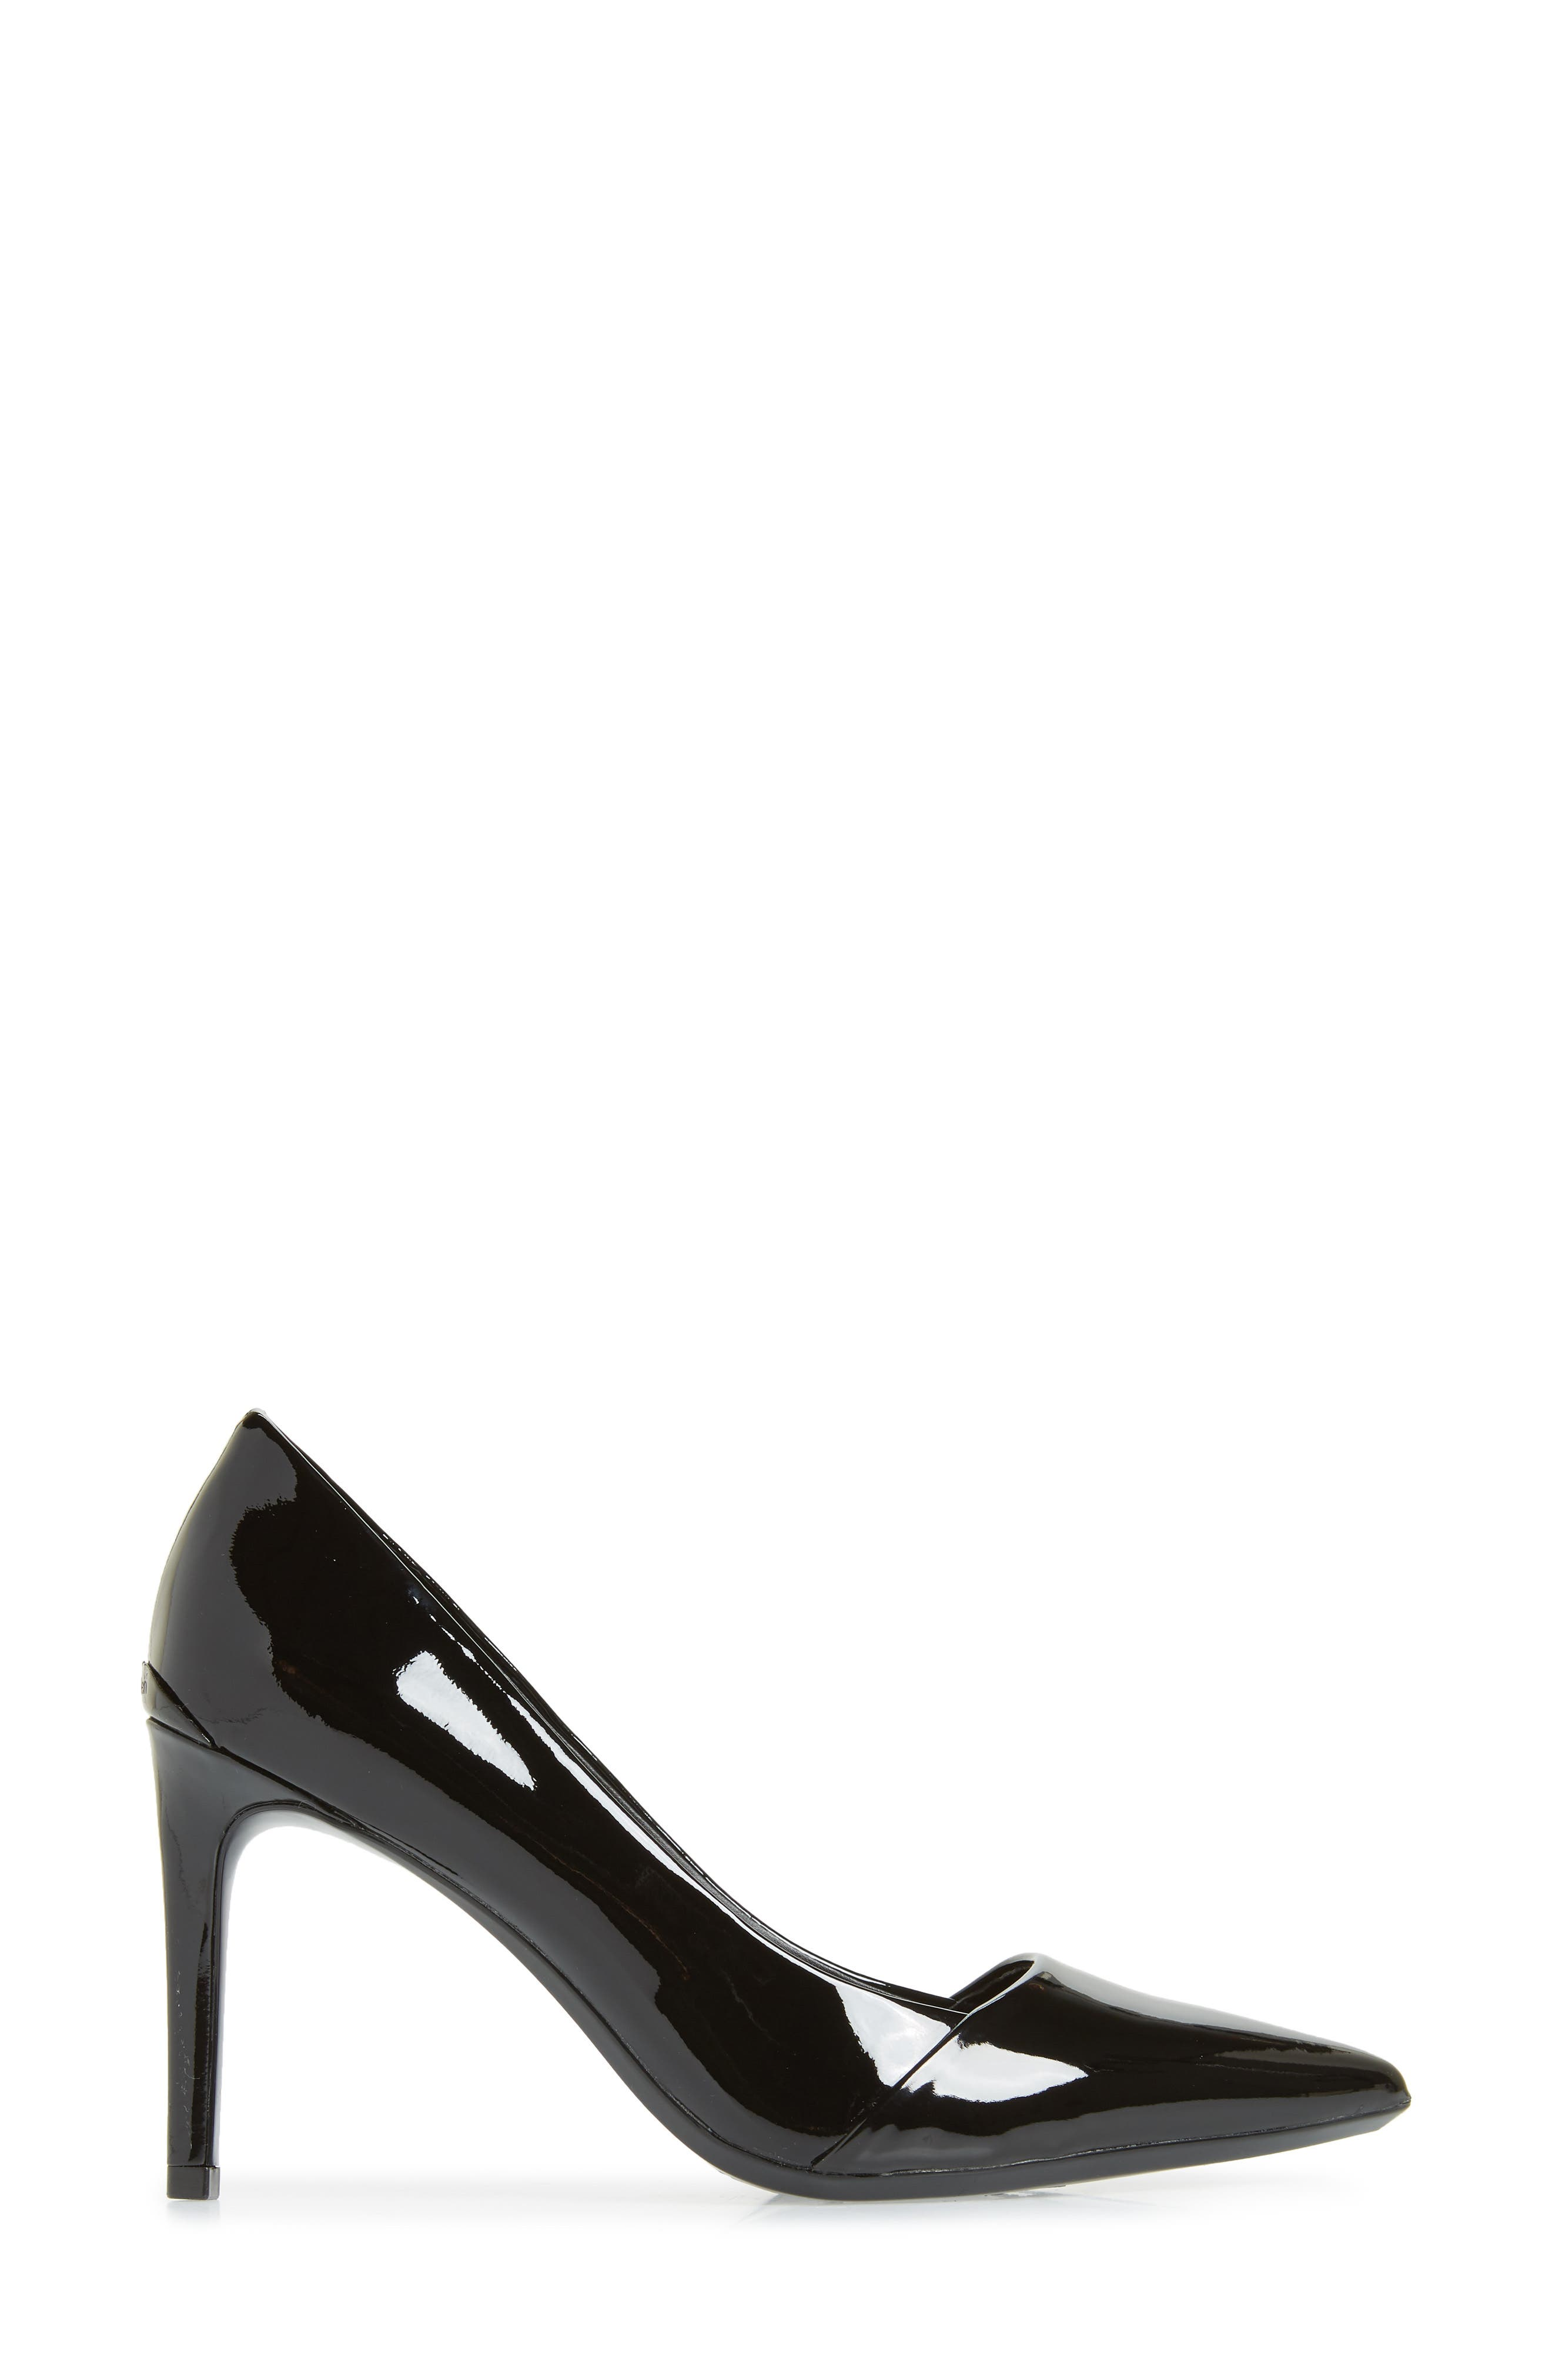 Roslyn Pointed Toe Pump,                             Alternate thumbnail 3, color,                             BLACK PATENT LEATHER